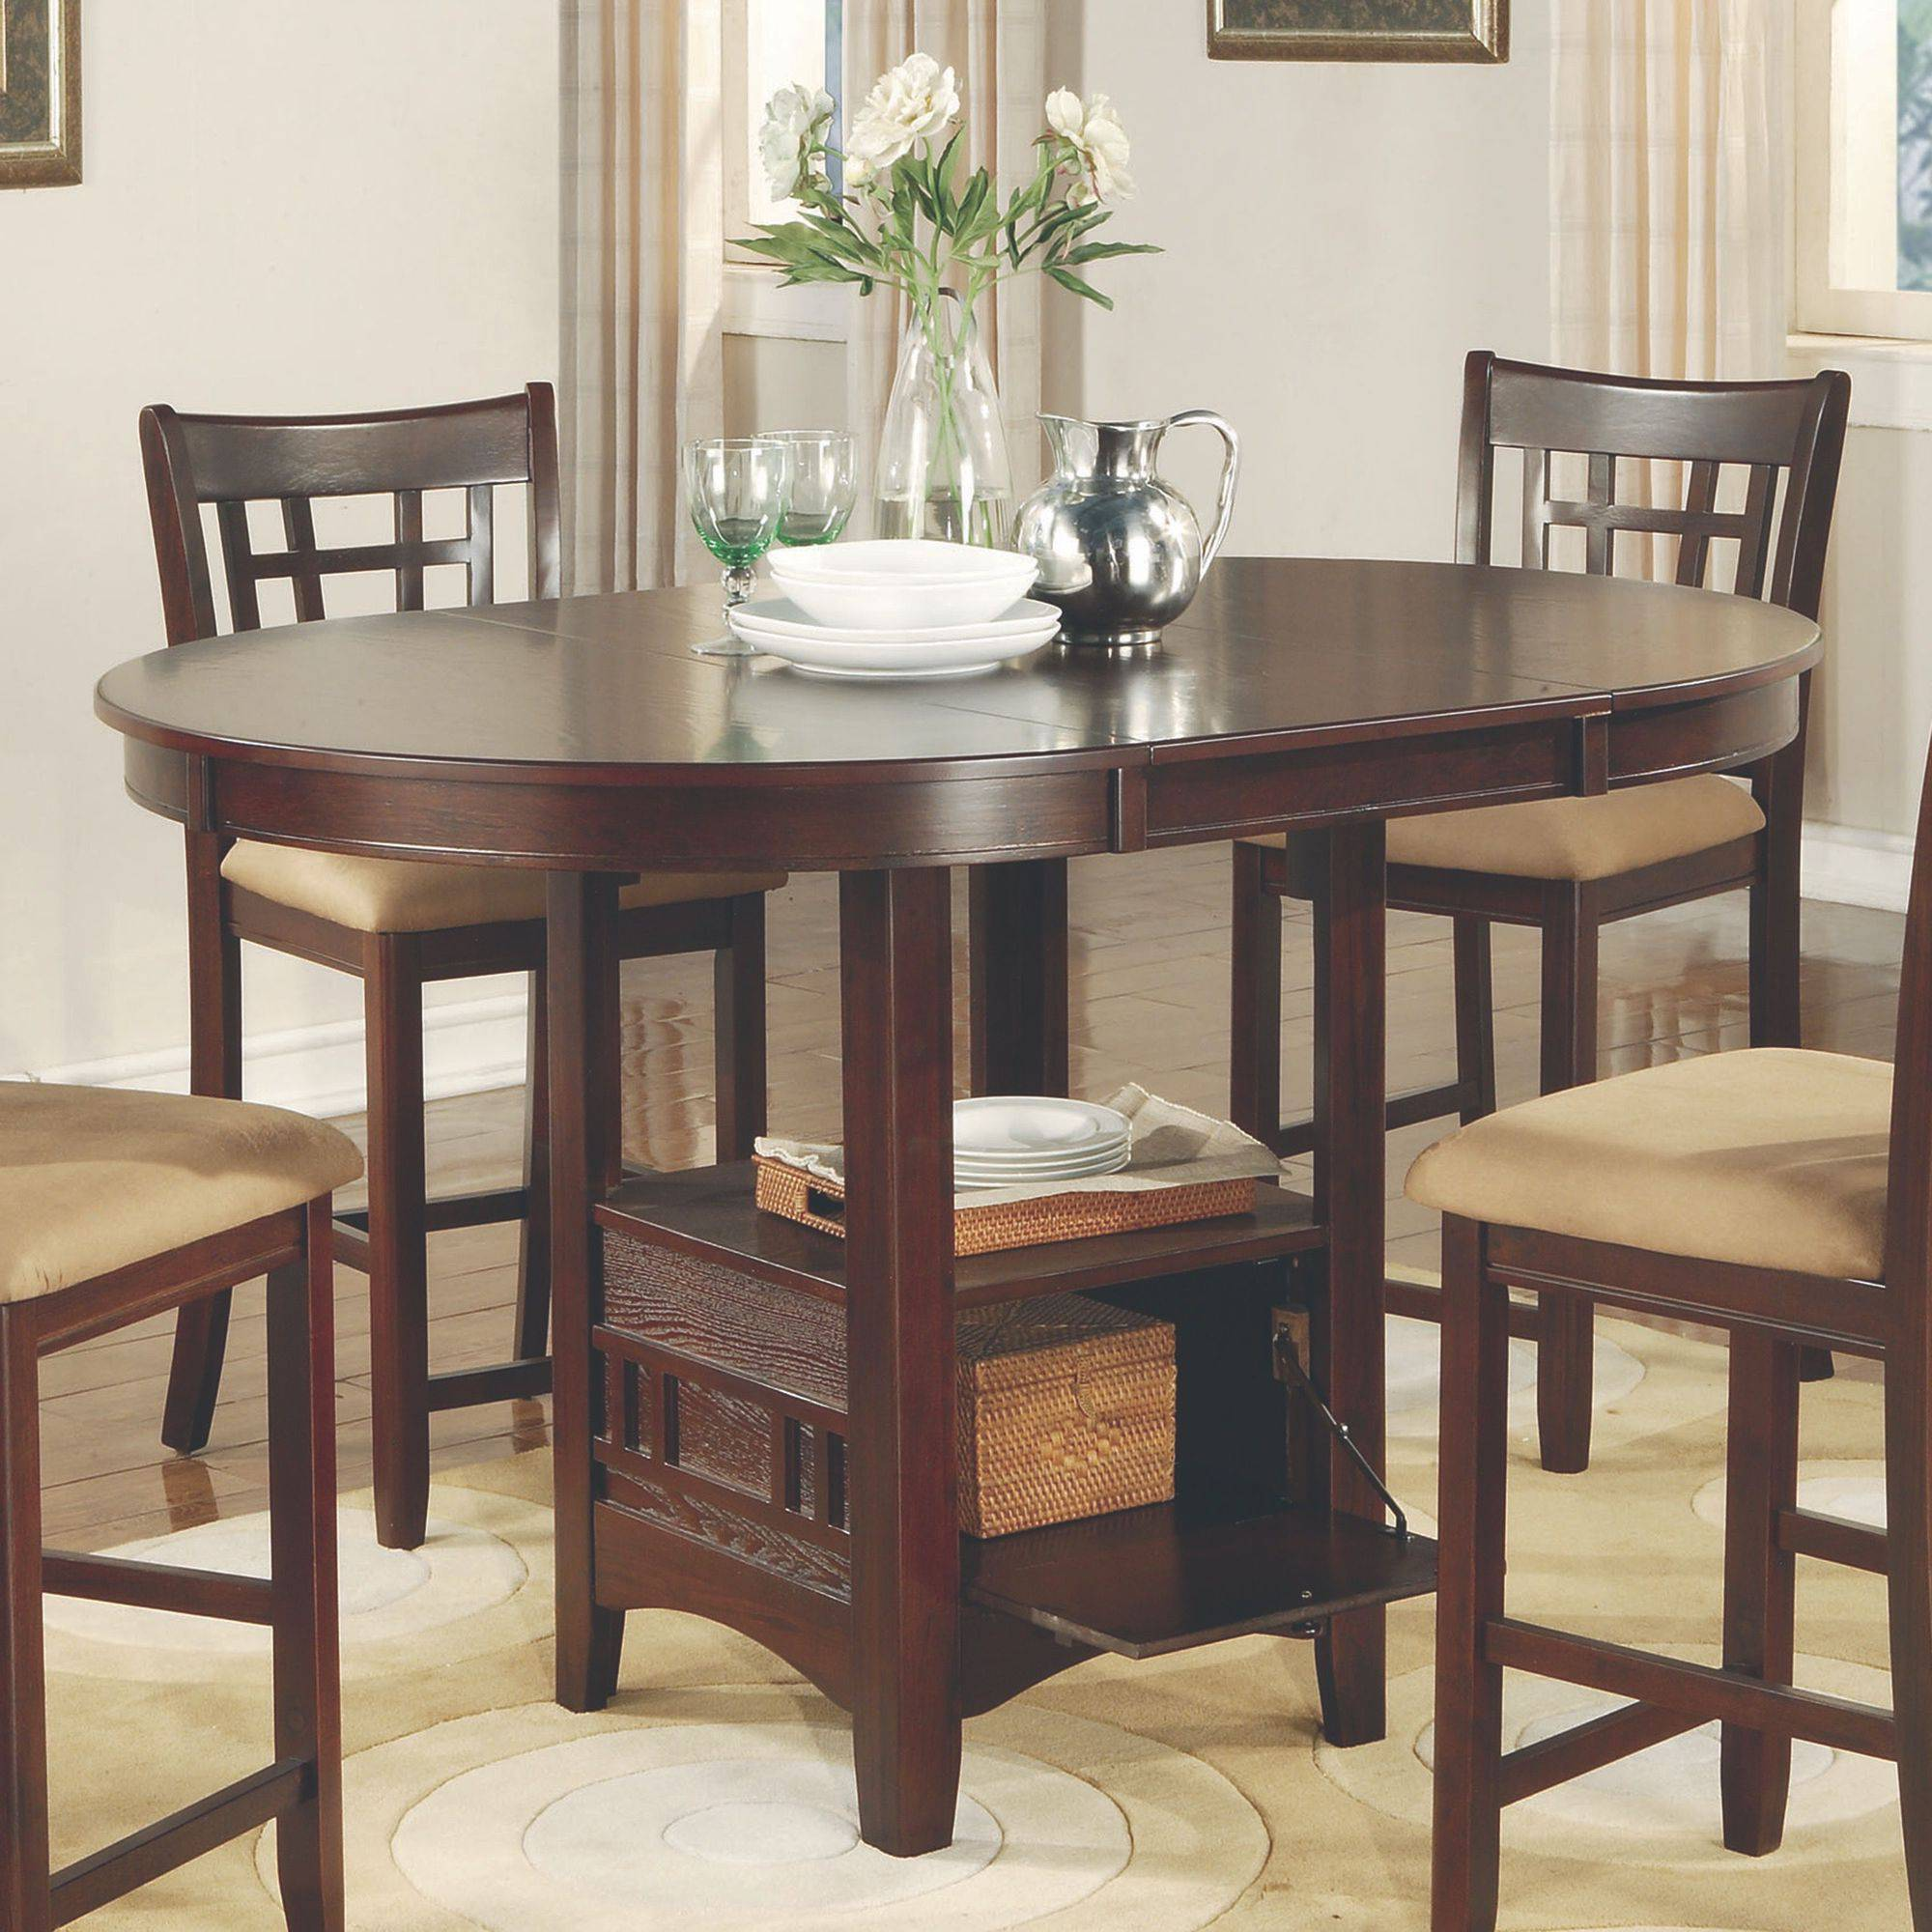 Coaster pany Lavon Dining Table in Warm Brown Counter Height